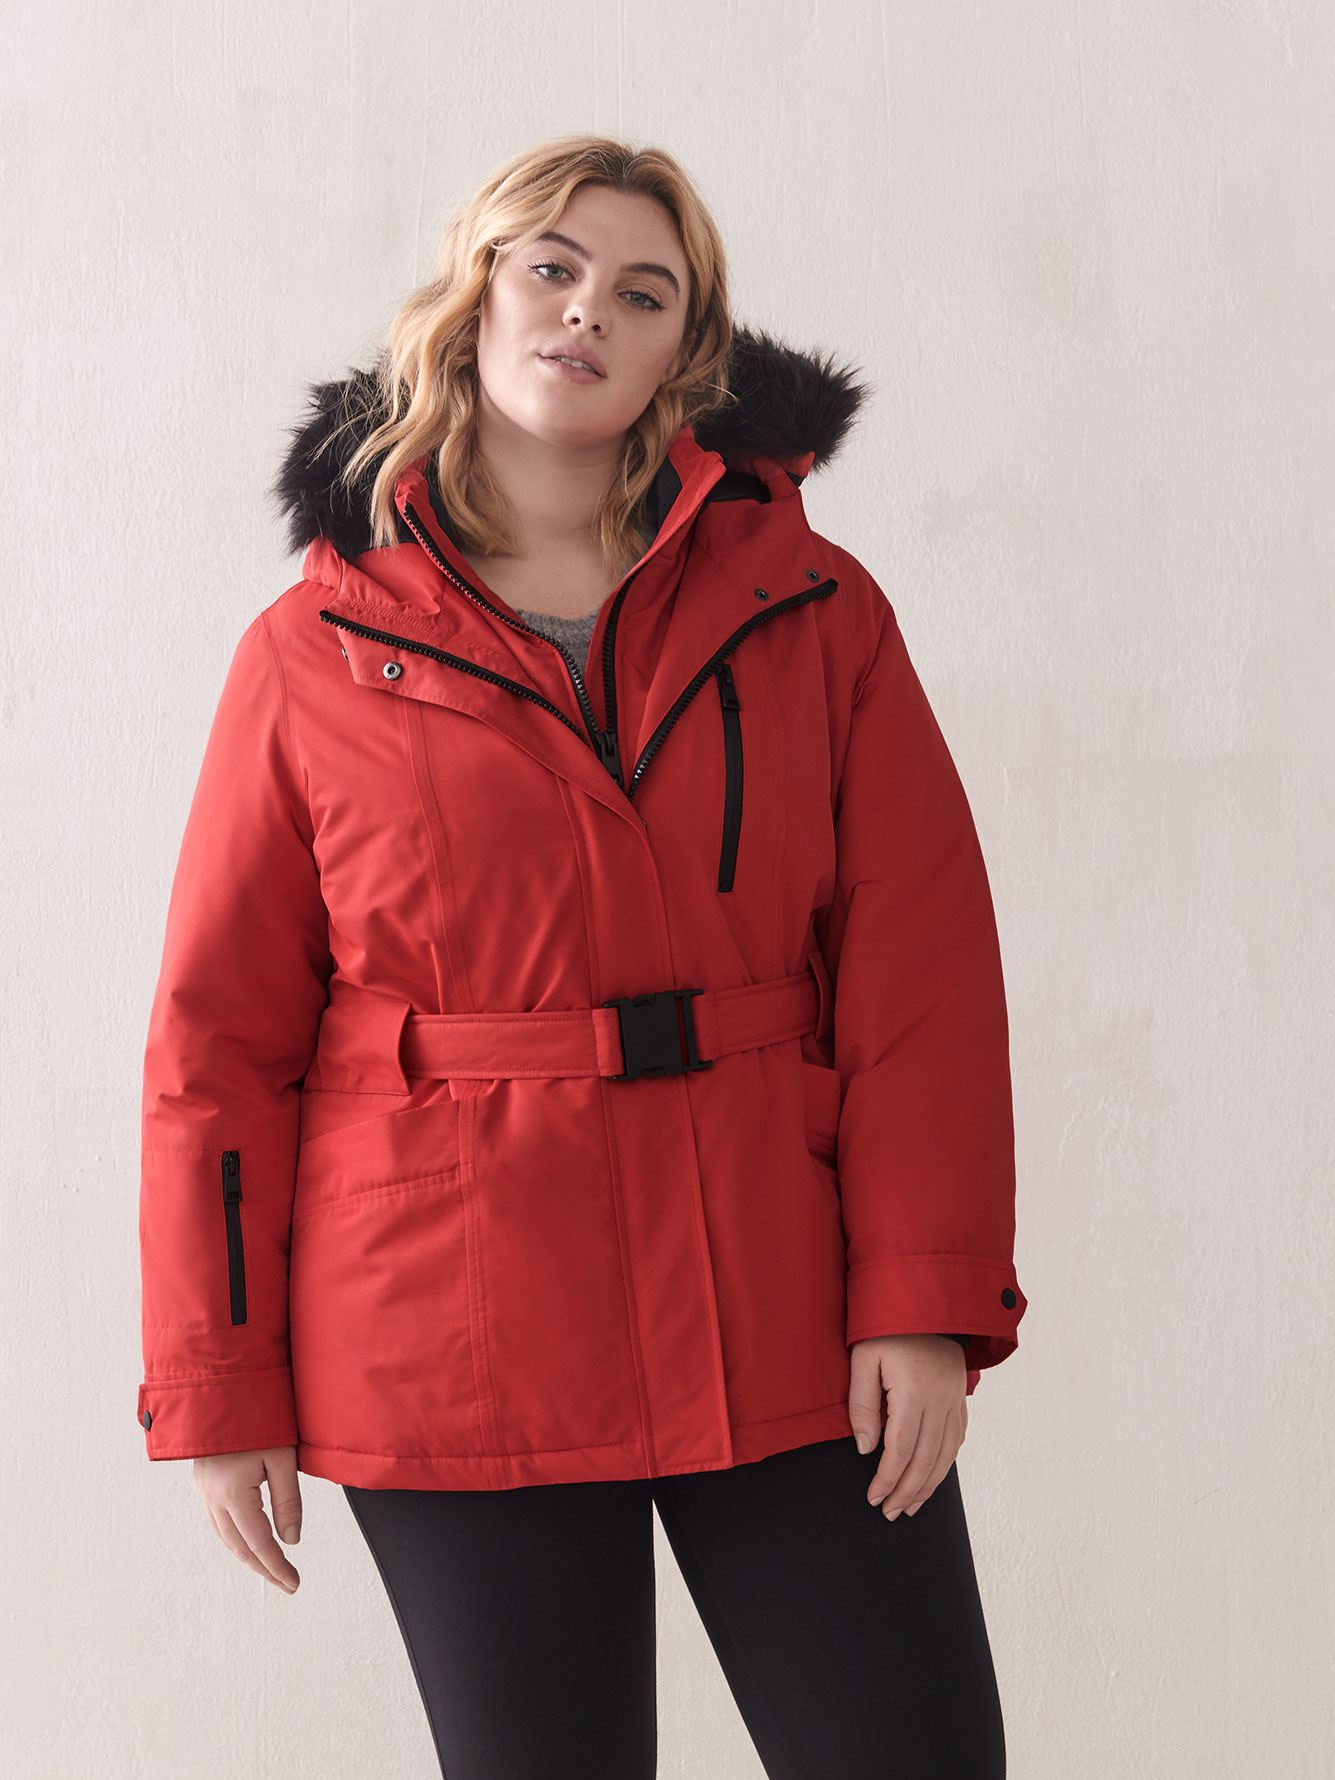 Belted Ski Jacket - Addition Elle